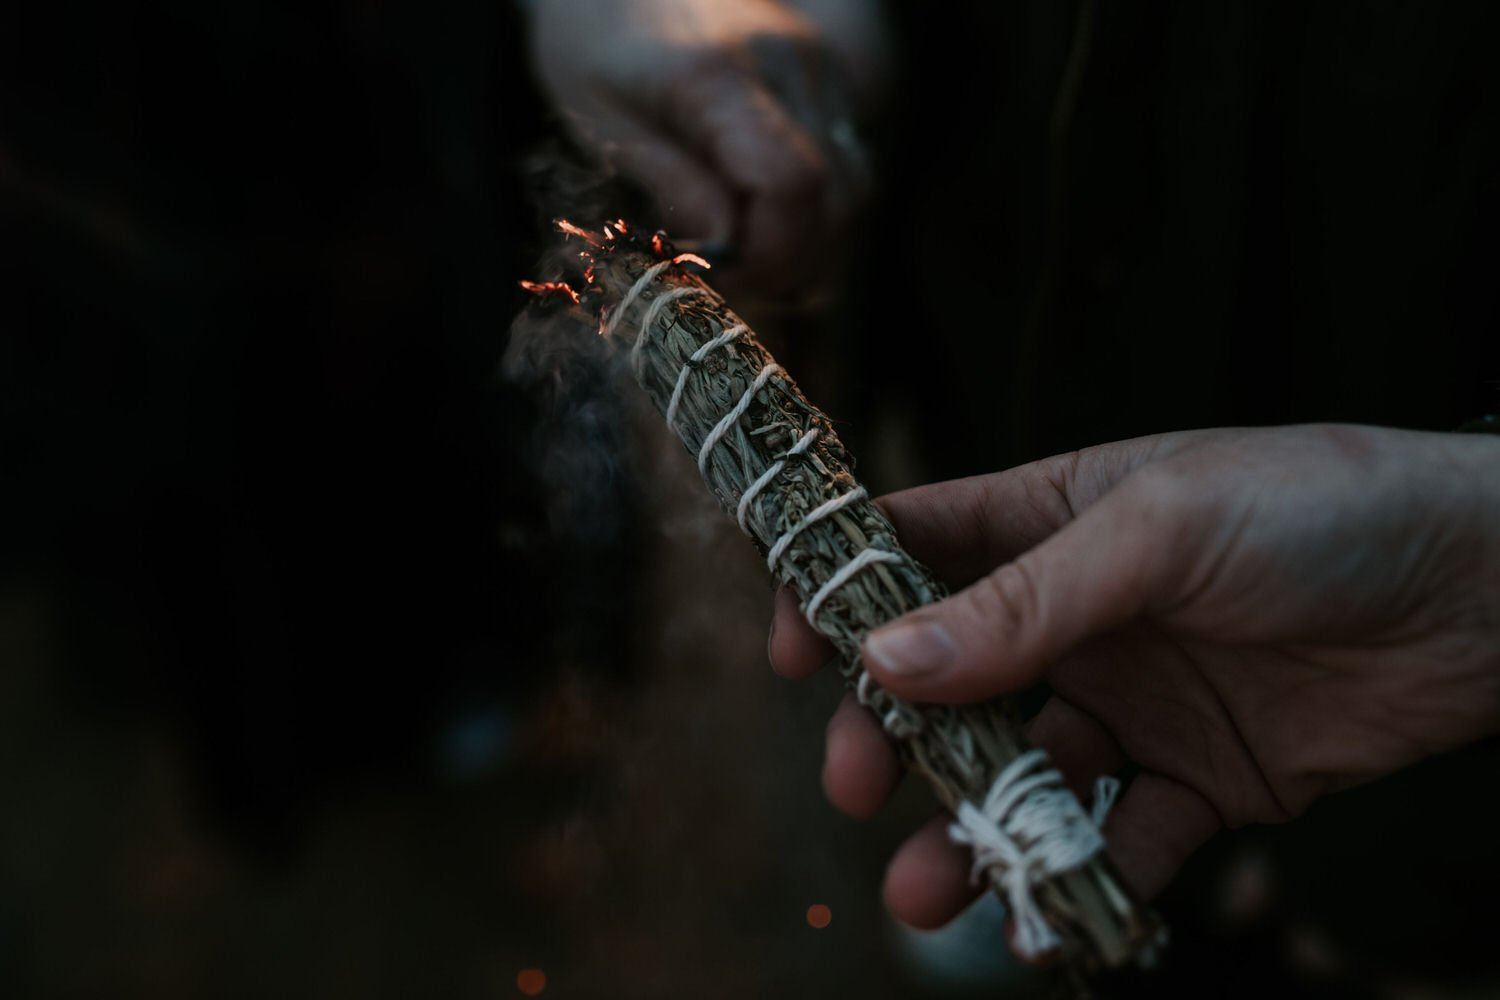 A close up detail shot of a pagan ceremony of someone burning some sage to cleanse the space